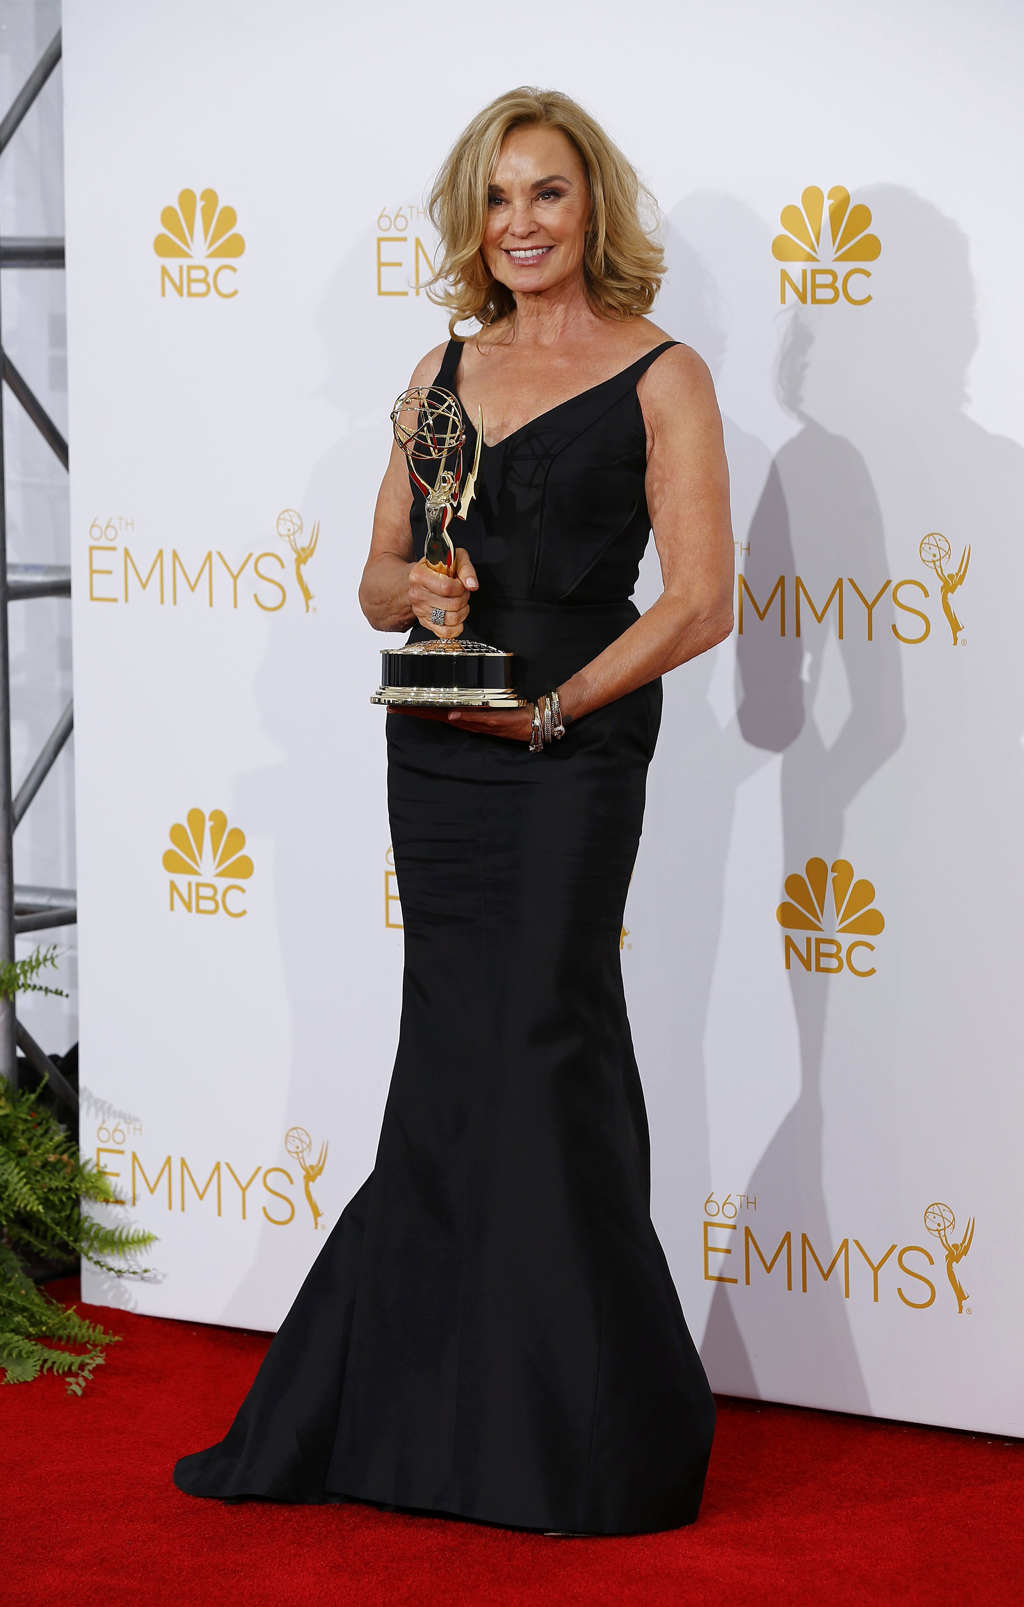 Jessica Lange poses with her award at the 66th Primetime Emmy Awards in Los Angeles